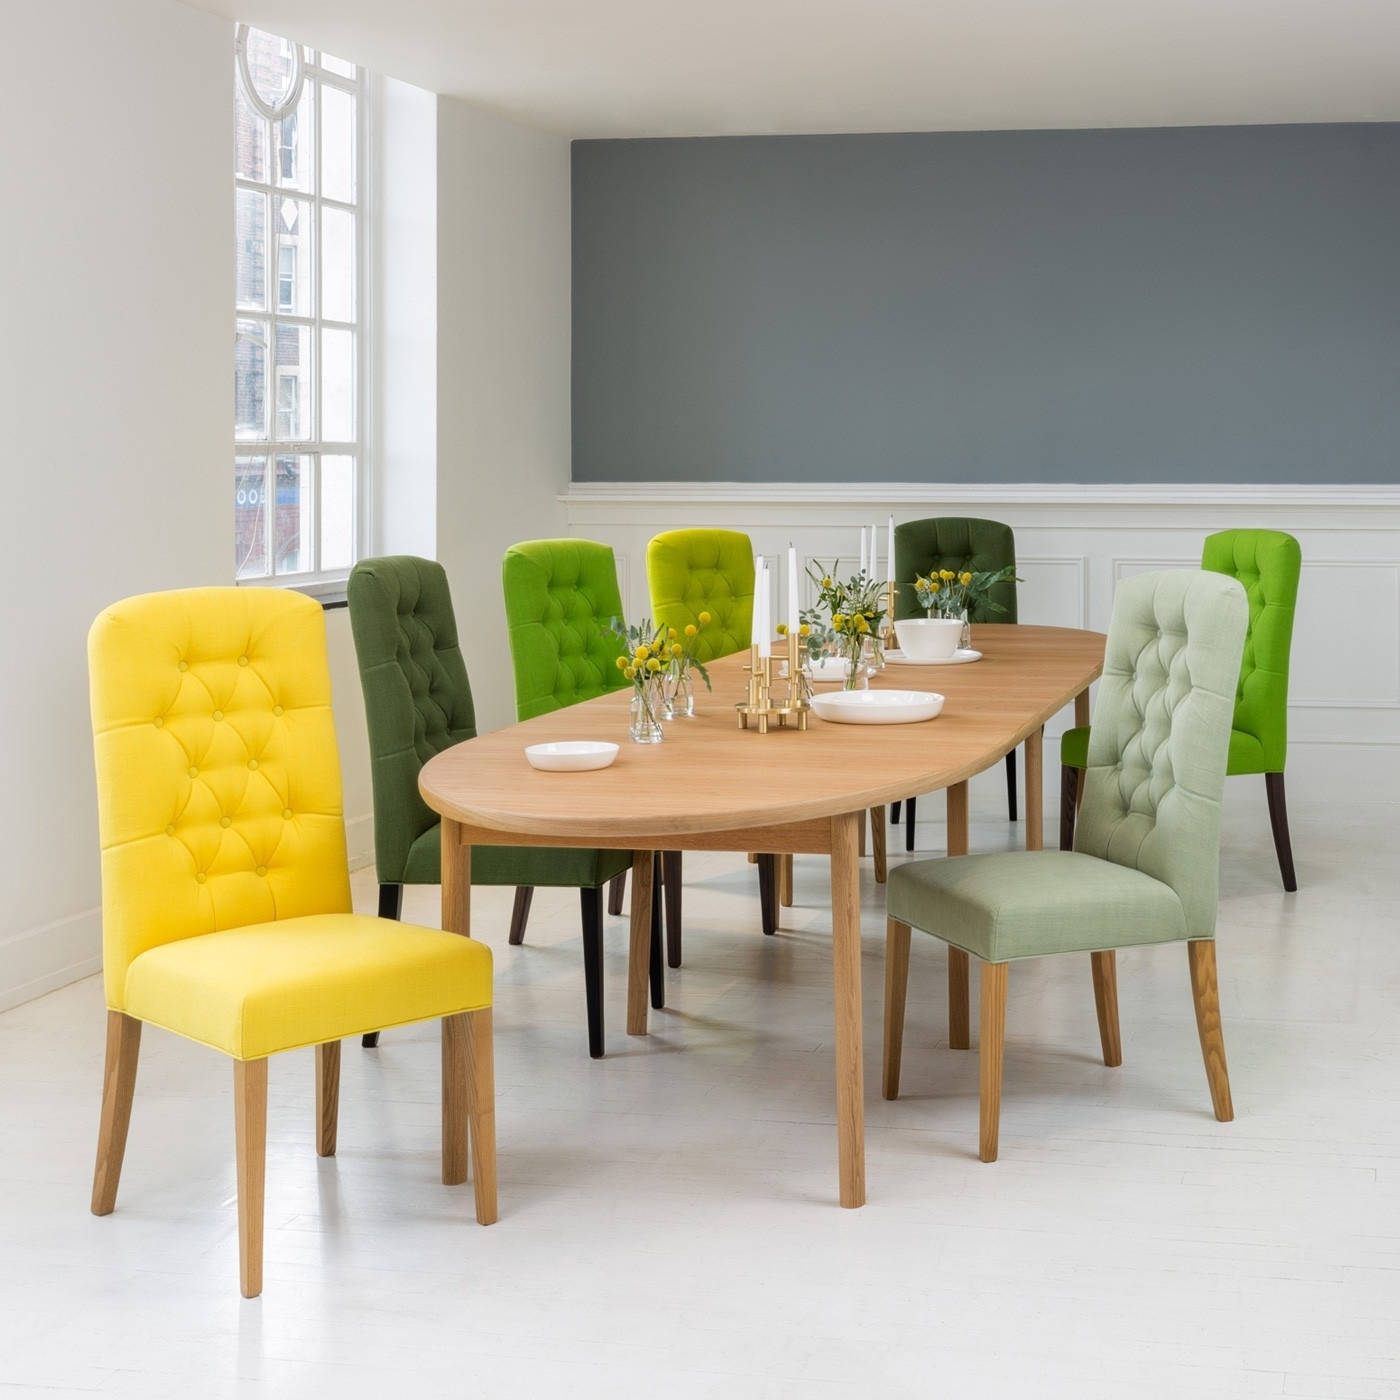 Most Current Extendable Dining Tables 6 Chairs Pertaining To Heal's Ellipse Extending Dining Table 6 – 10 Seater (View 15 of 25)